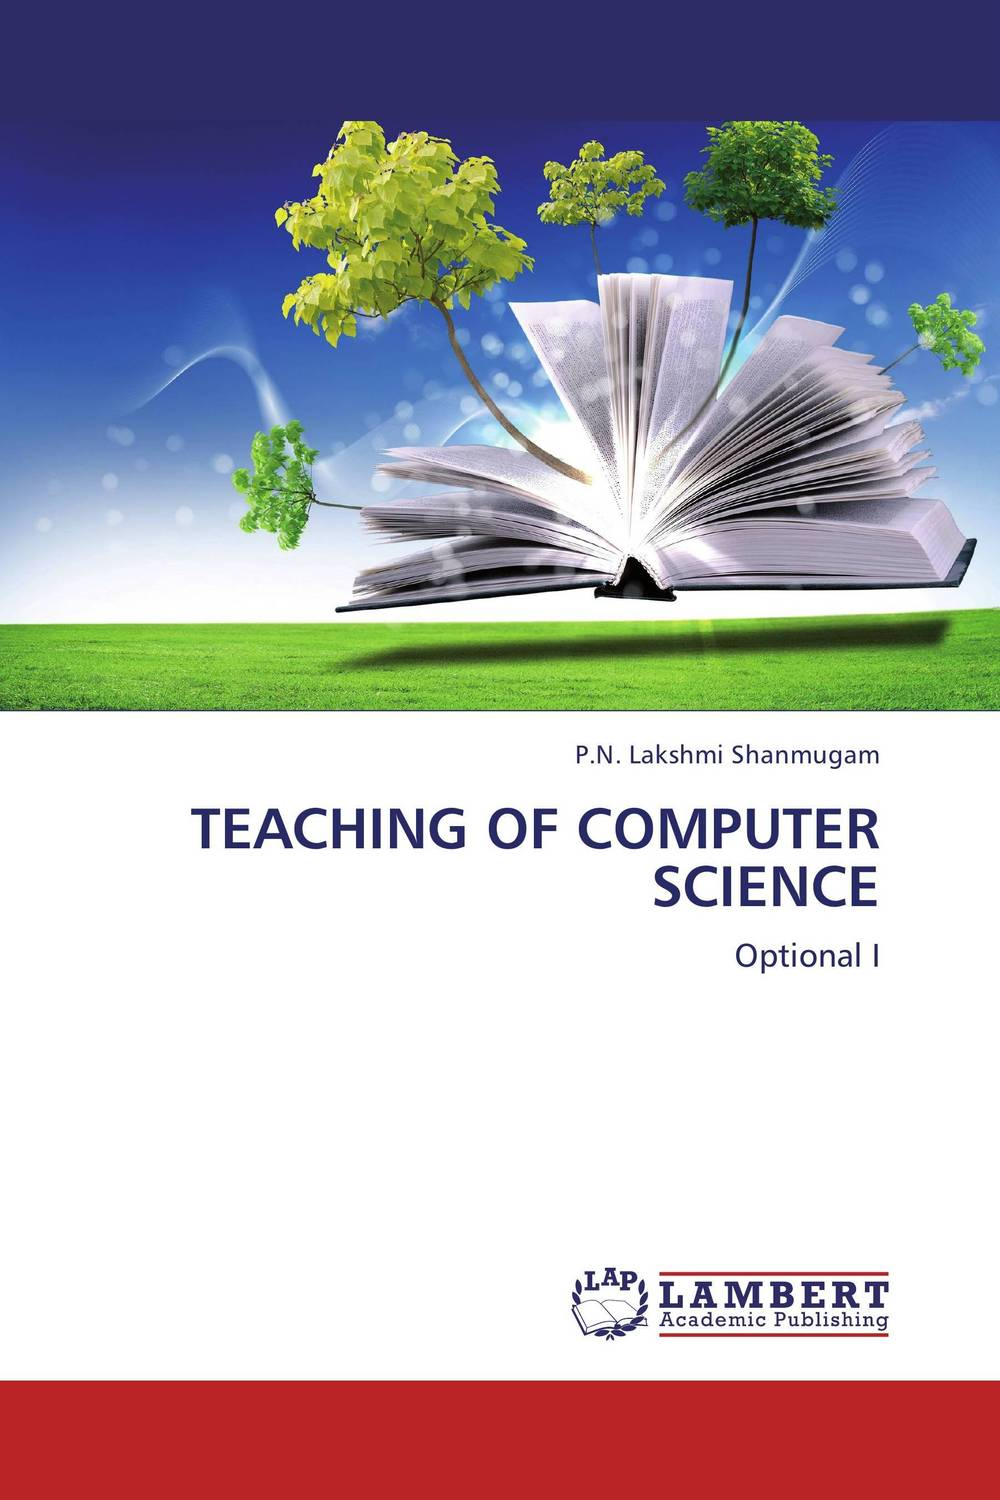 TEACHING OF COMPUTER SCIENCE modern security methods in applied computer science